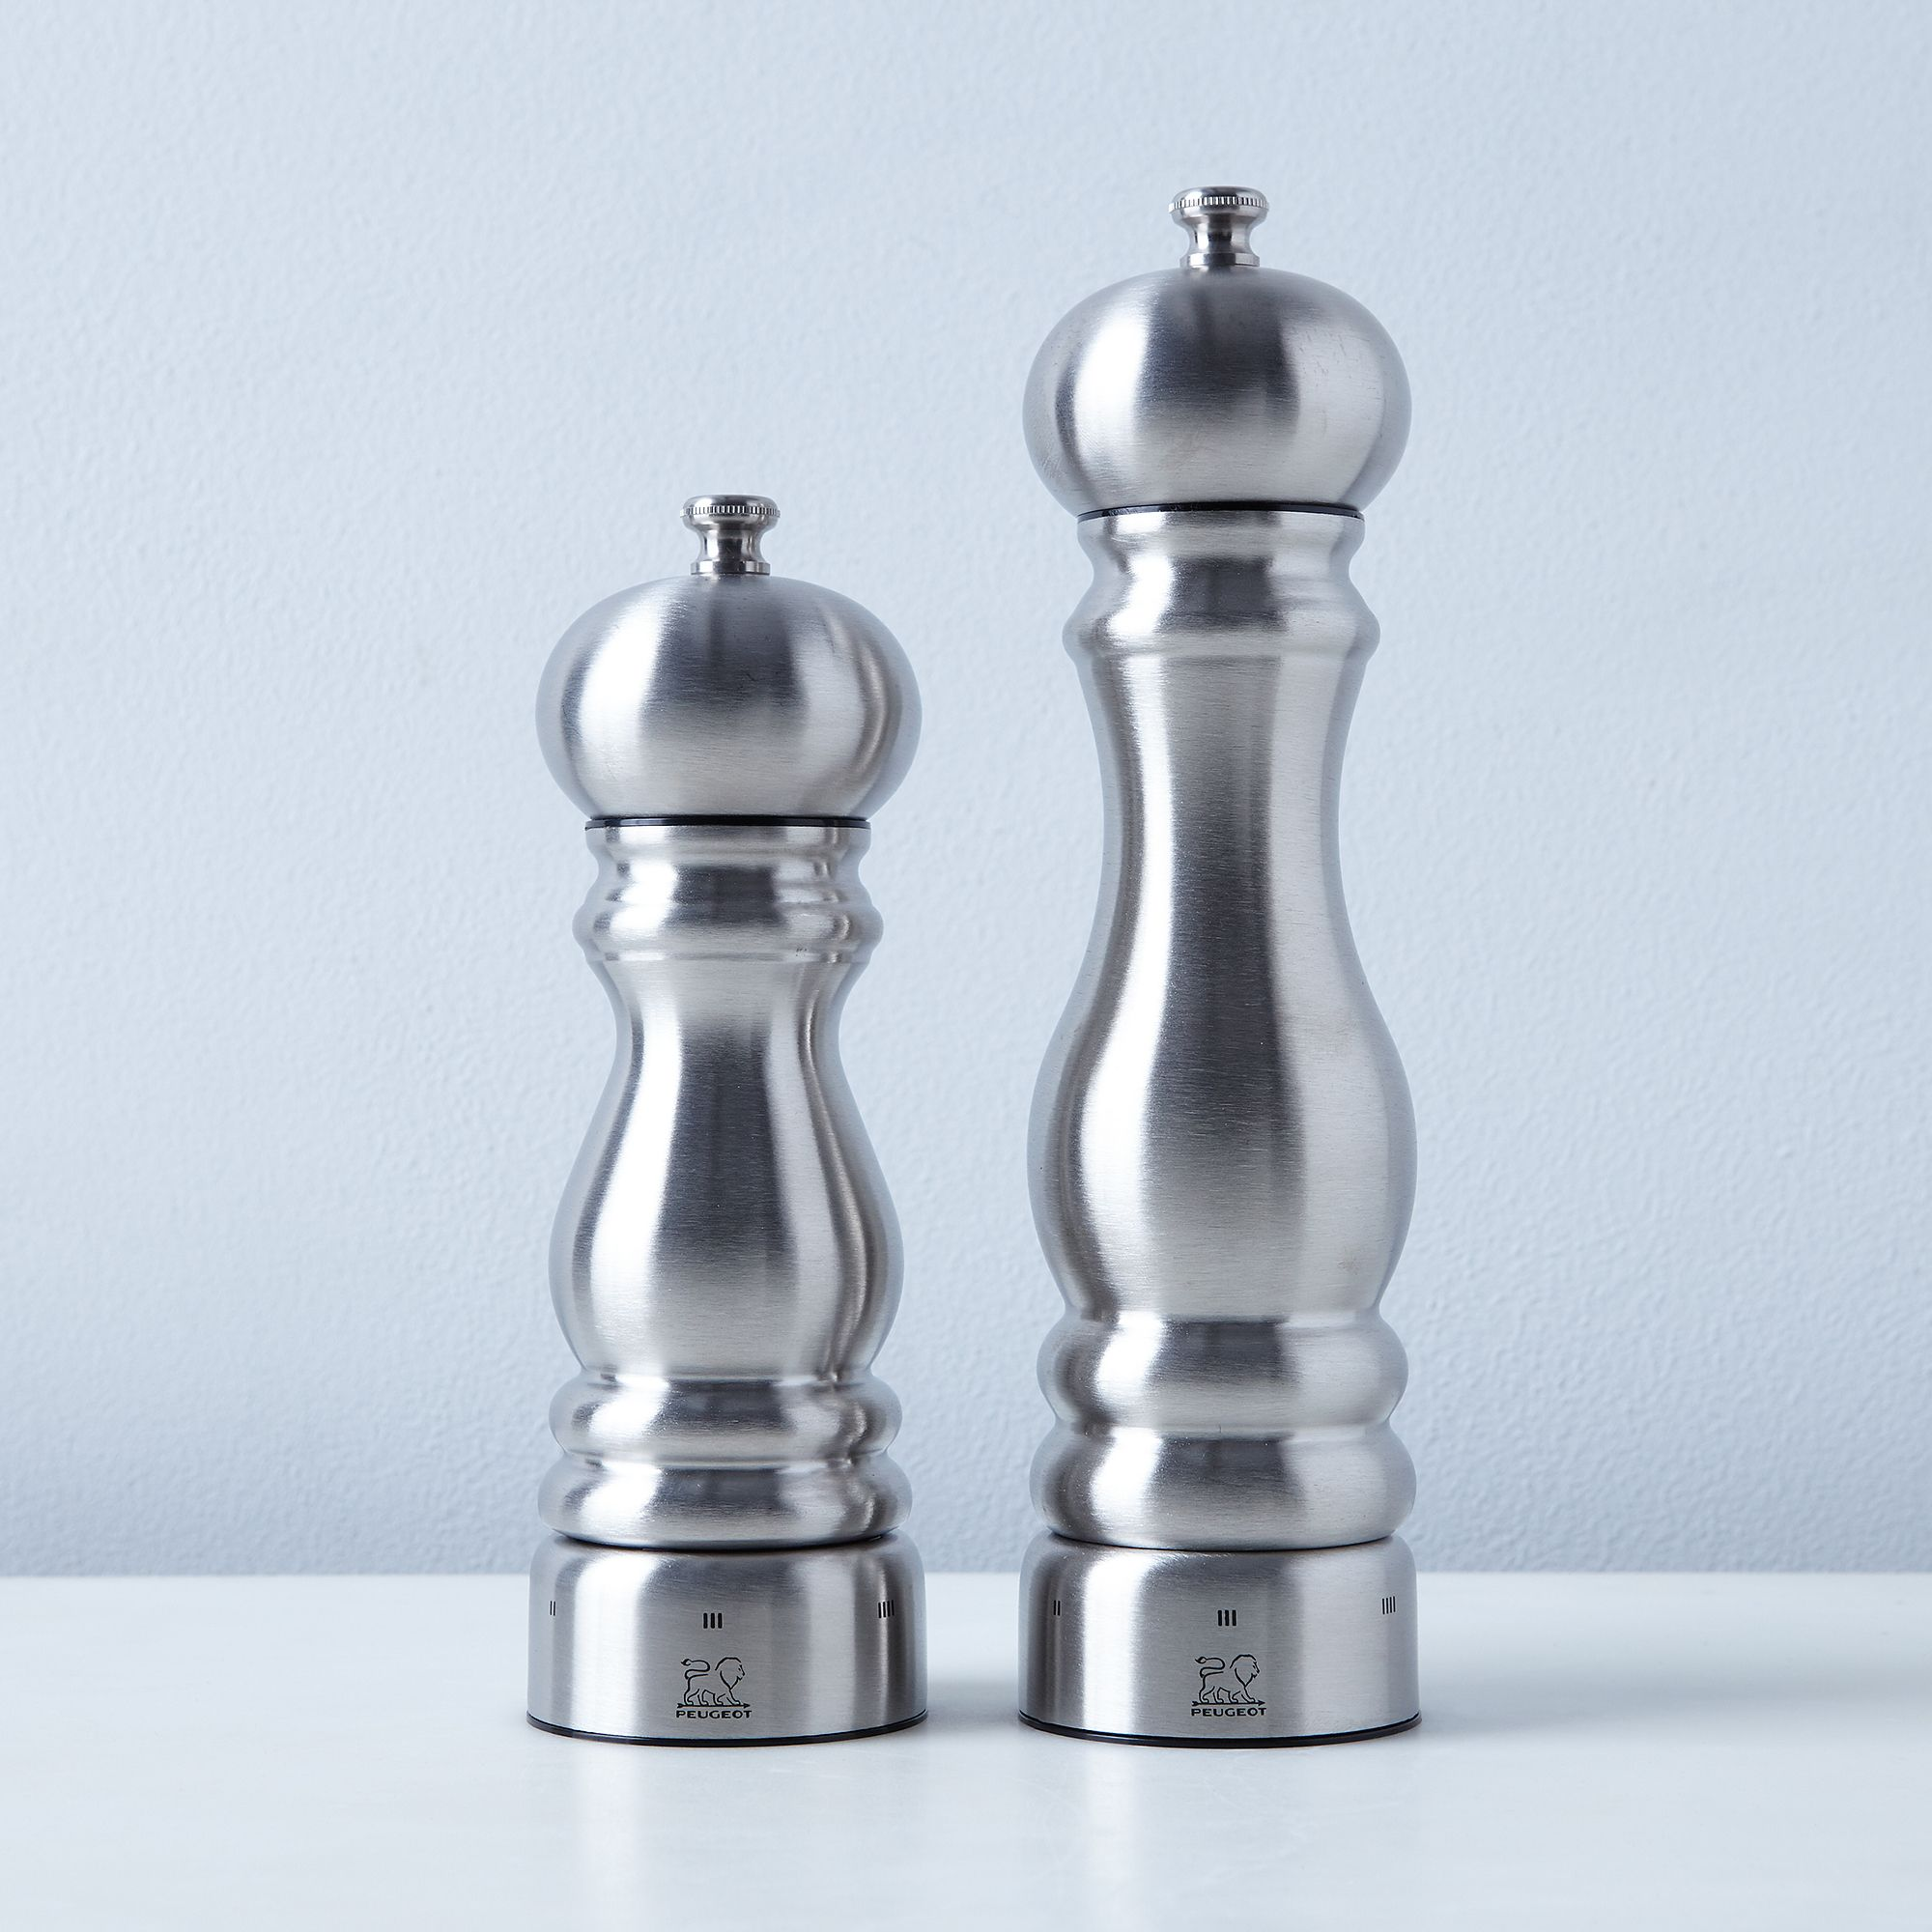 3 Little Known Facts About Peugeot & Their Iconic Pepper Mills